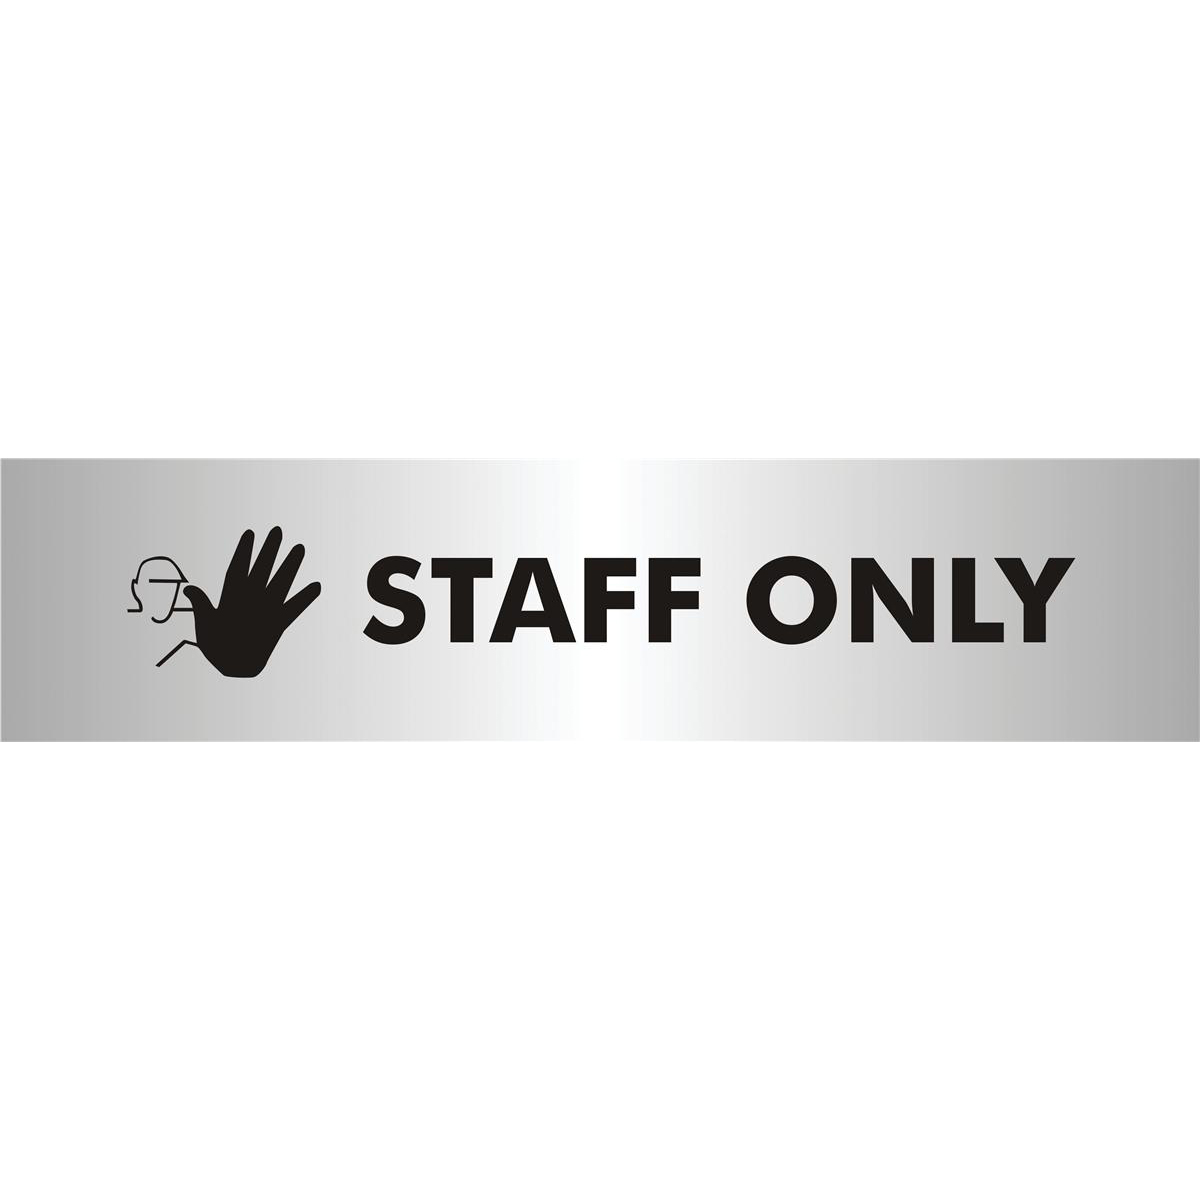 Stewart Superior Staff Only Sign Brushed Aluminium Acrylic W190xH45mm Self-adhesive Ref bac110